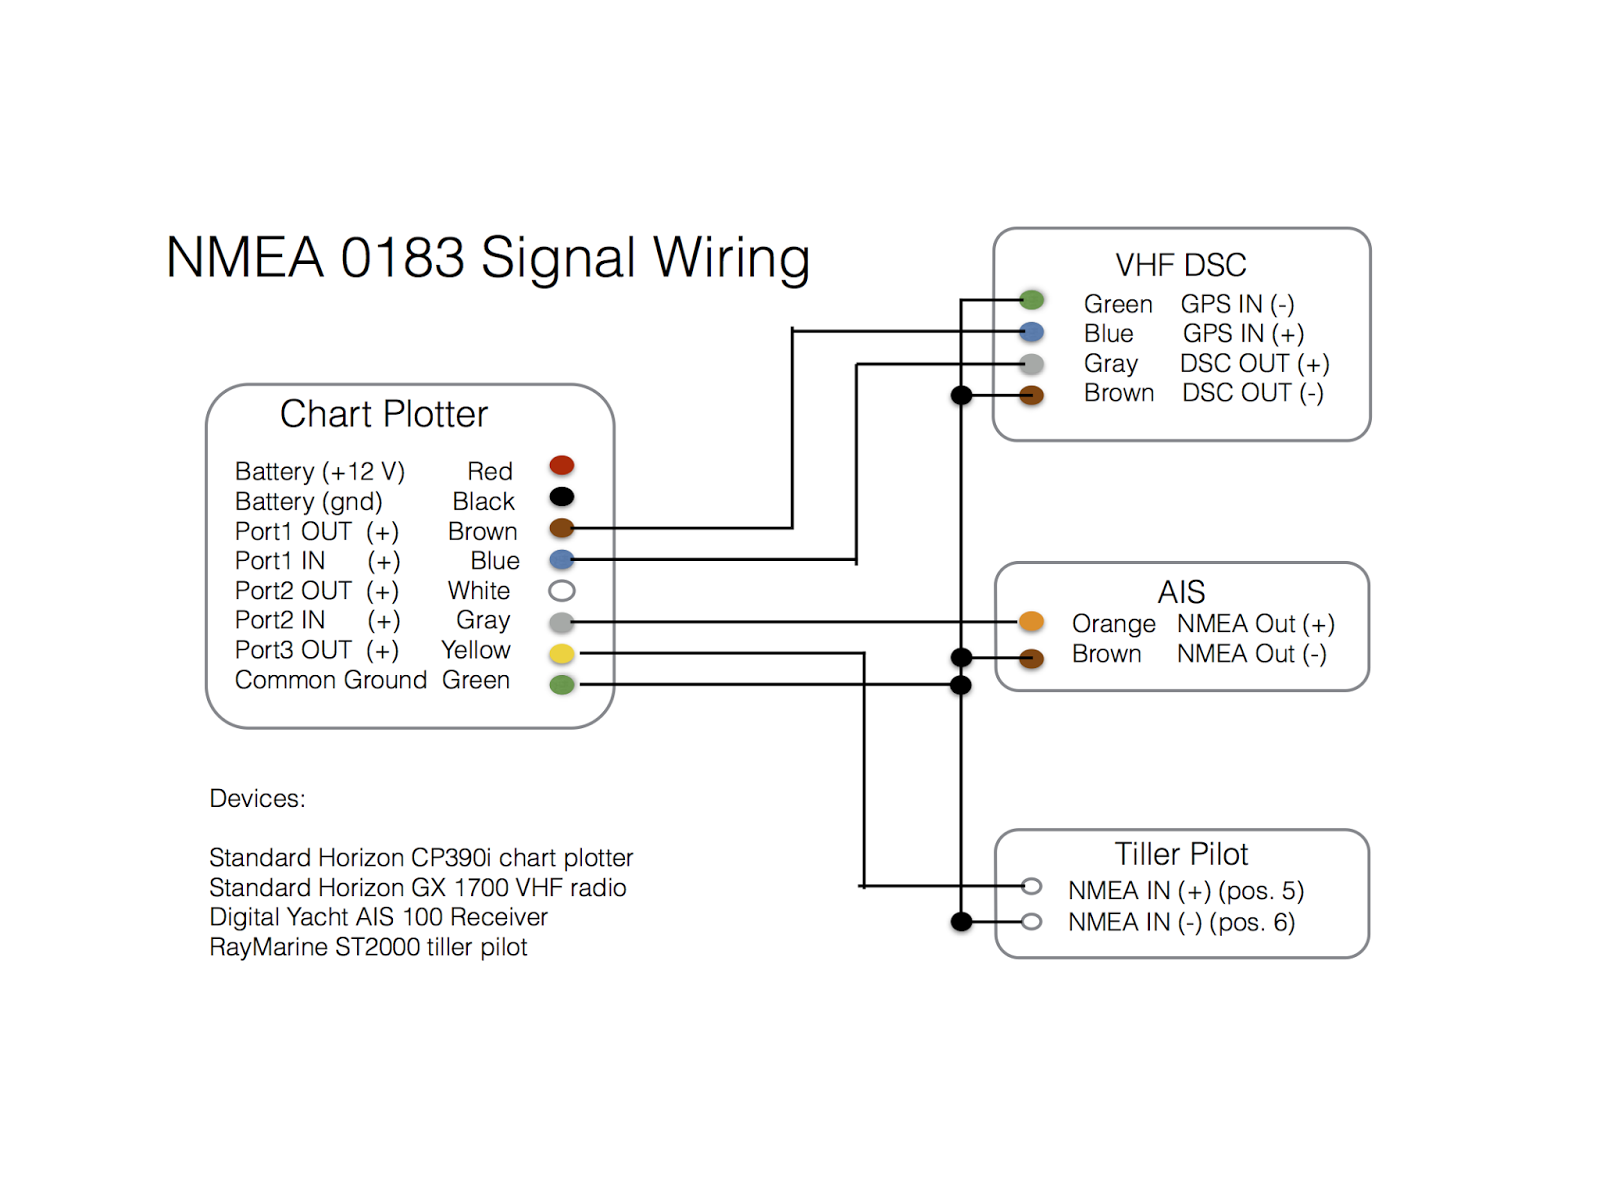 Ripple NMEA%2Bwiring connecting a chart plotter, vhf, ais receiver and tiller pilot nmea 0183 wiring diagram at aneh.co